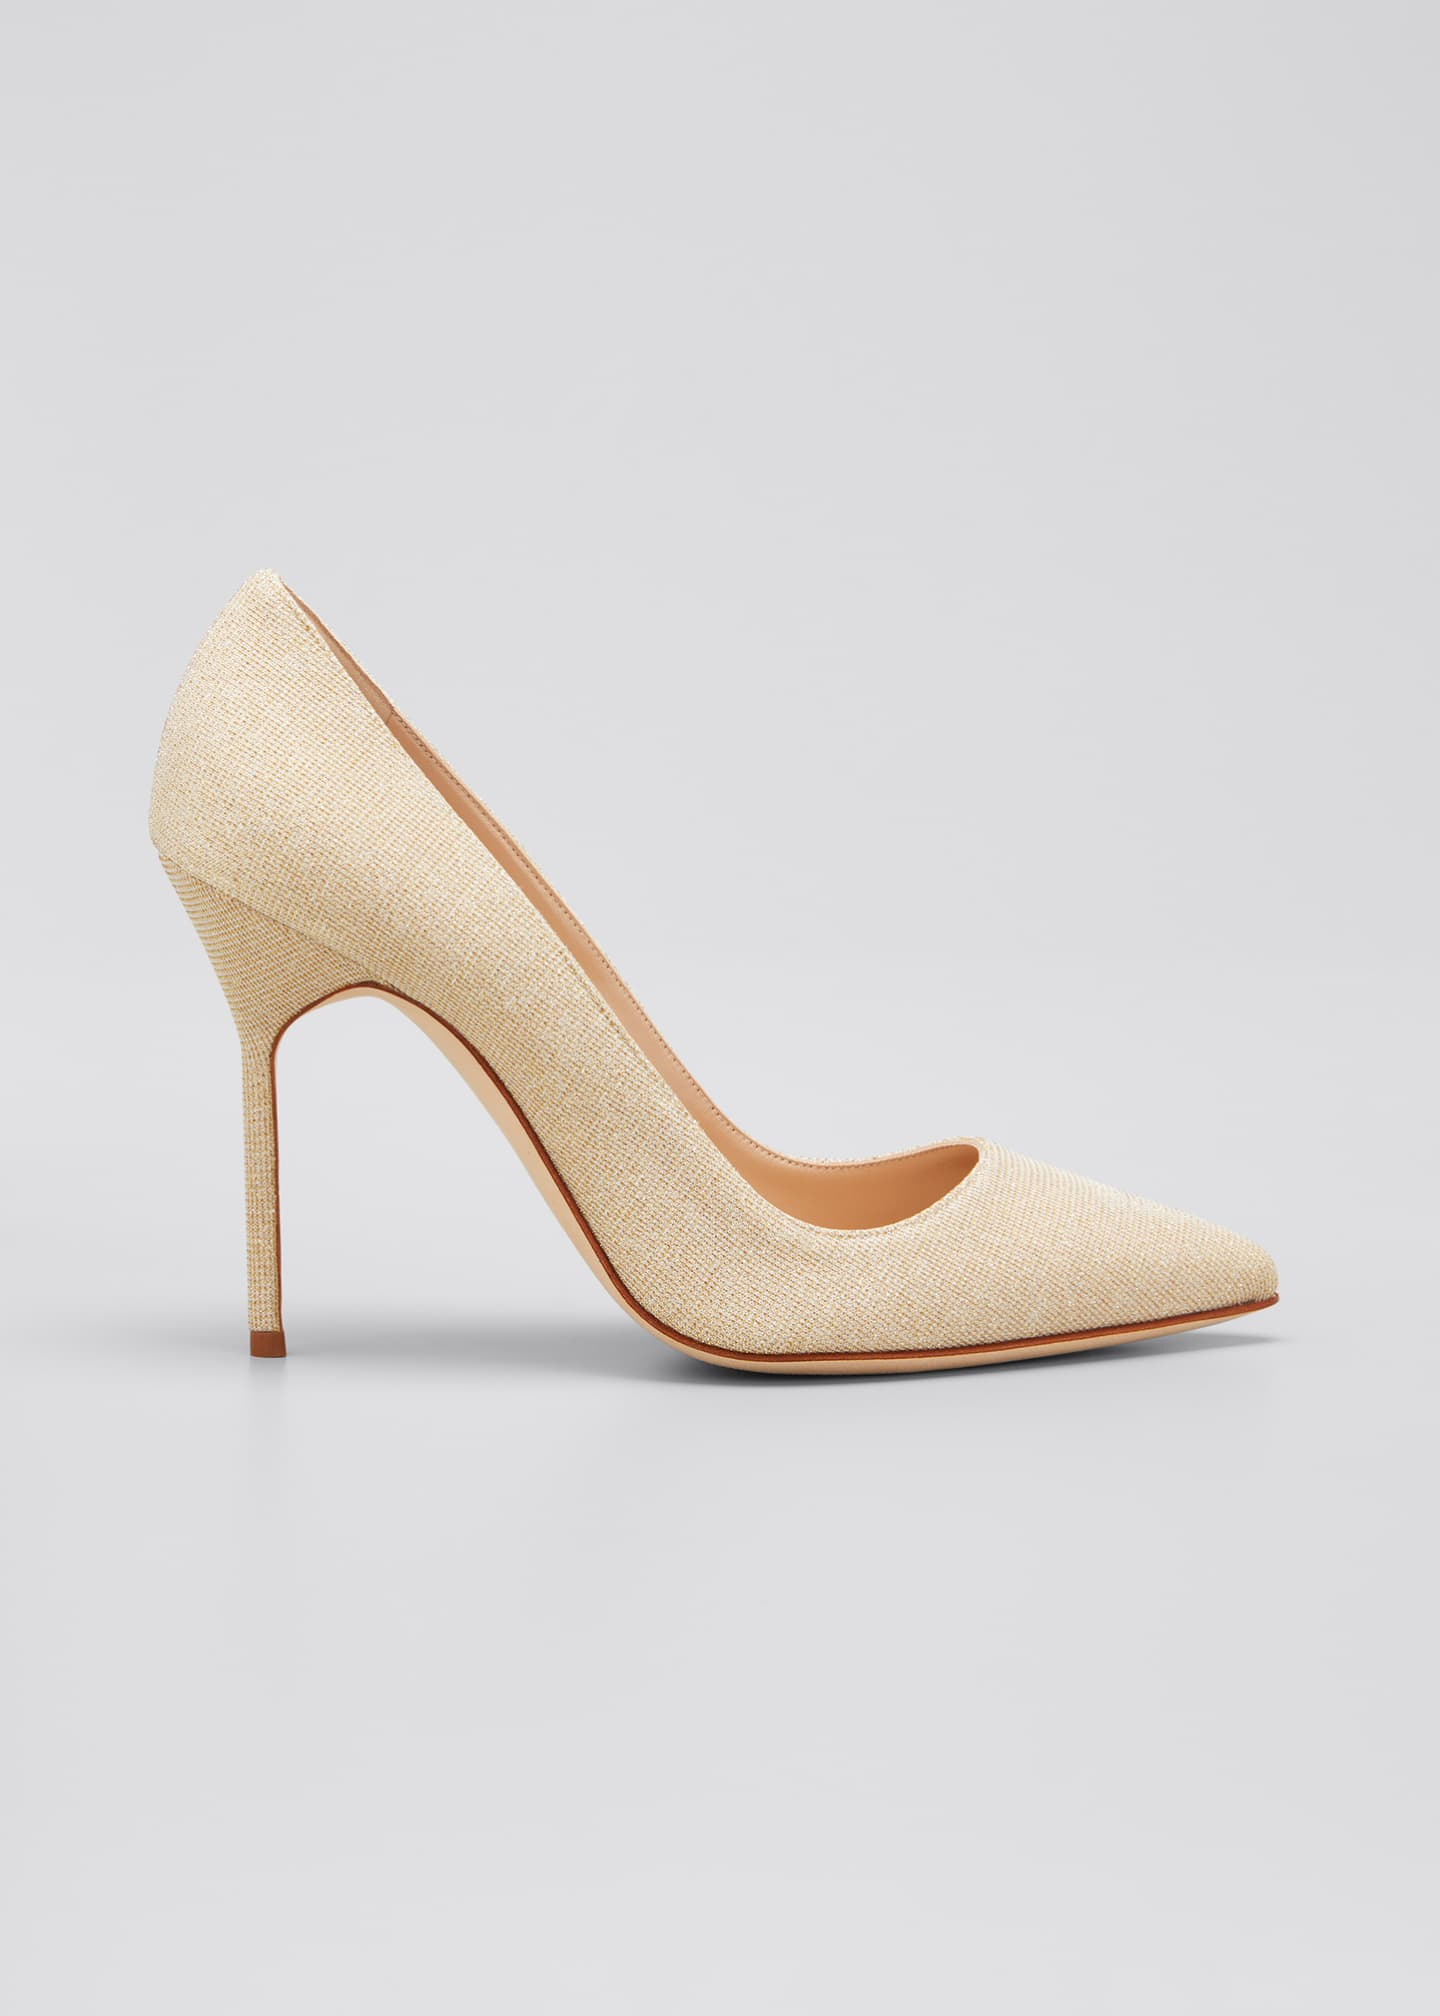 Image 1 of 5: BB 150mm Stiletto Pumps